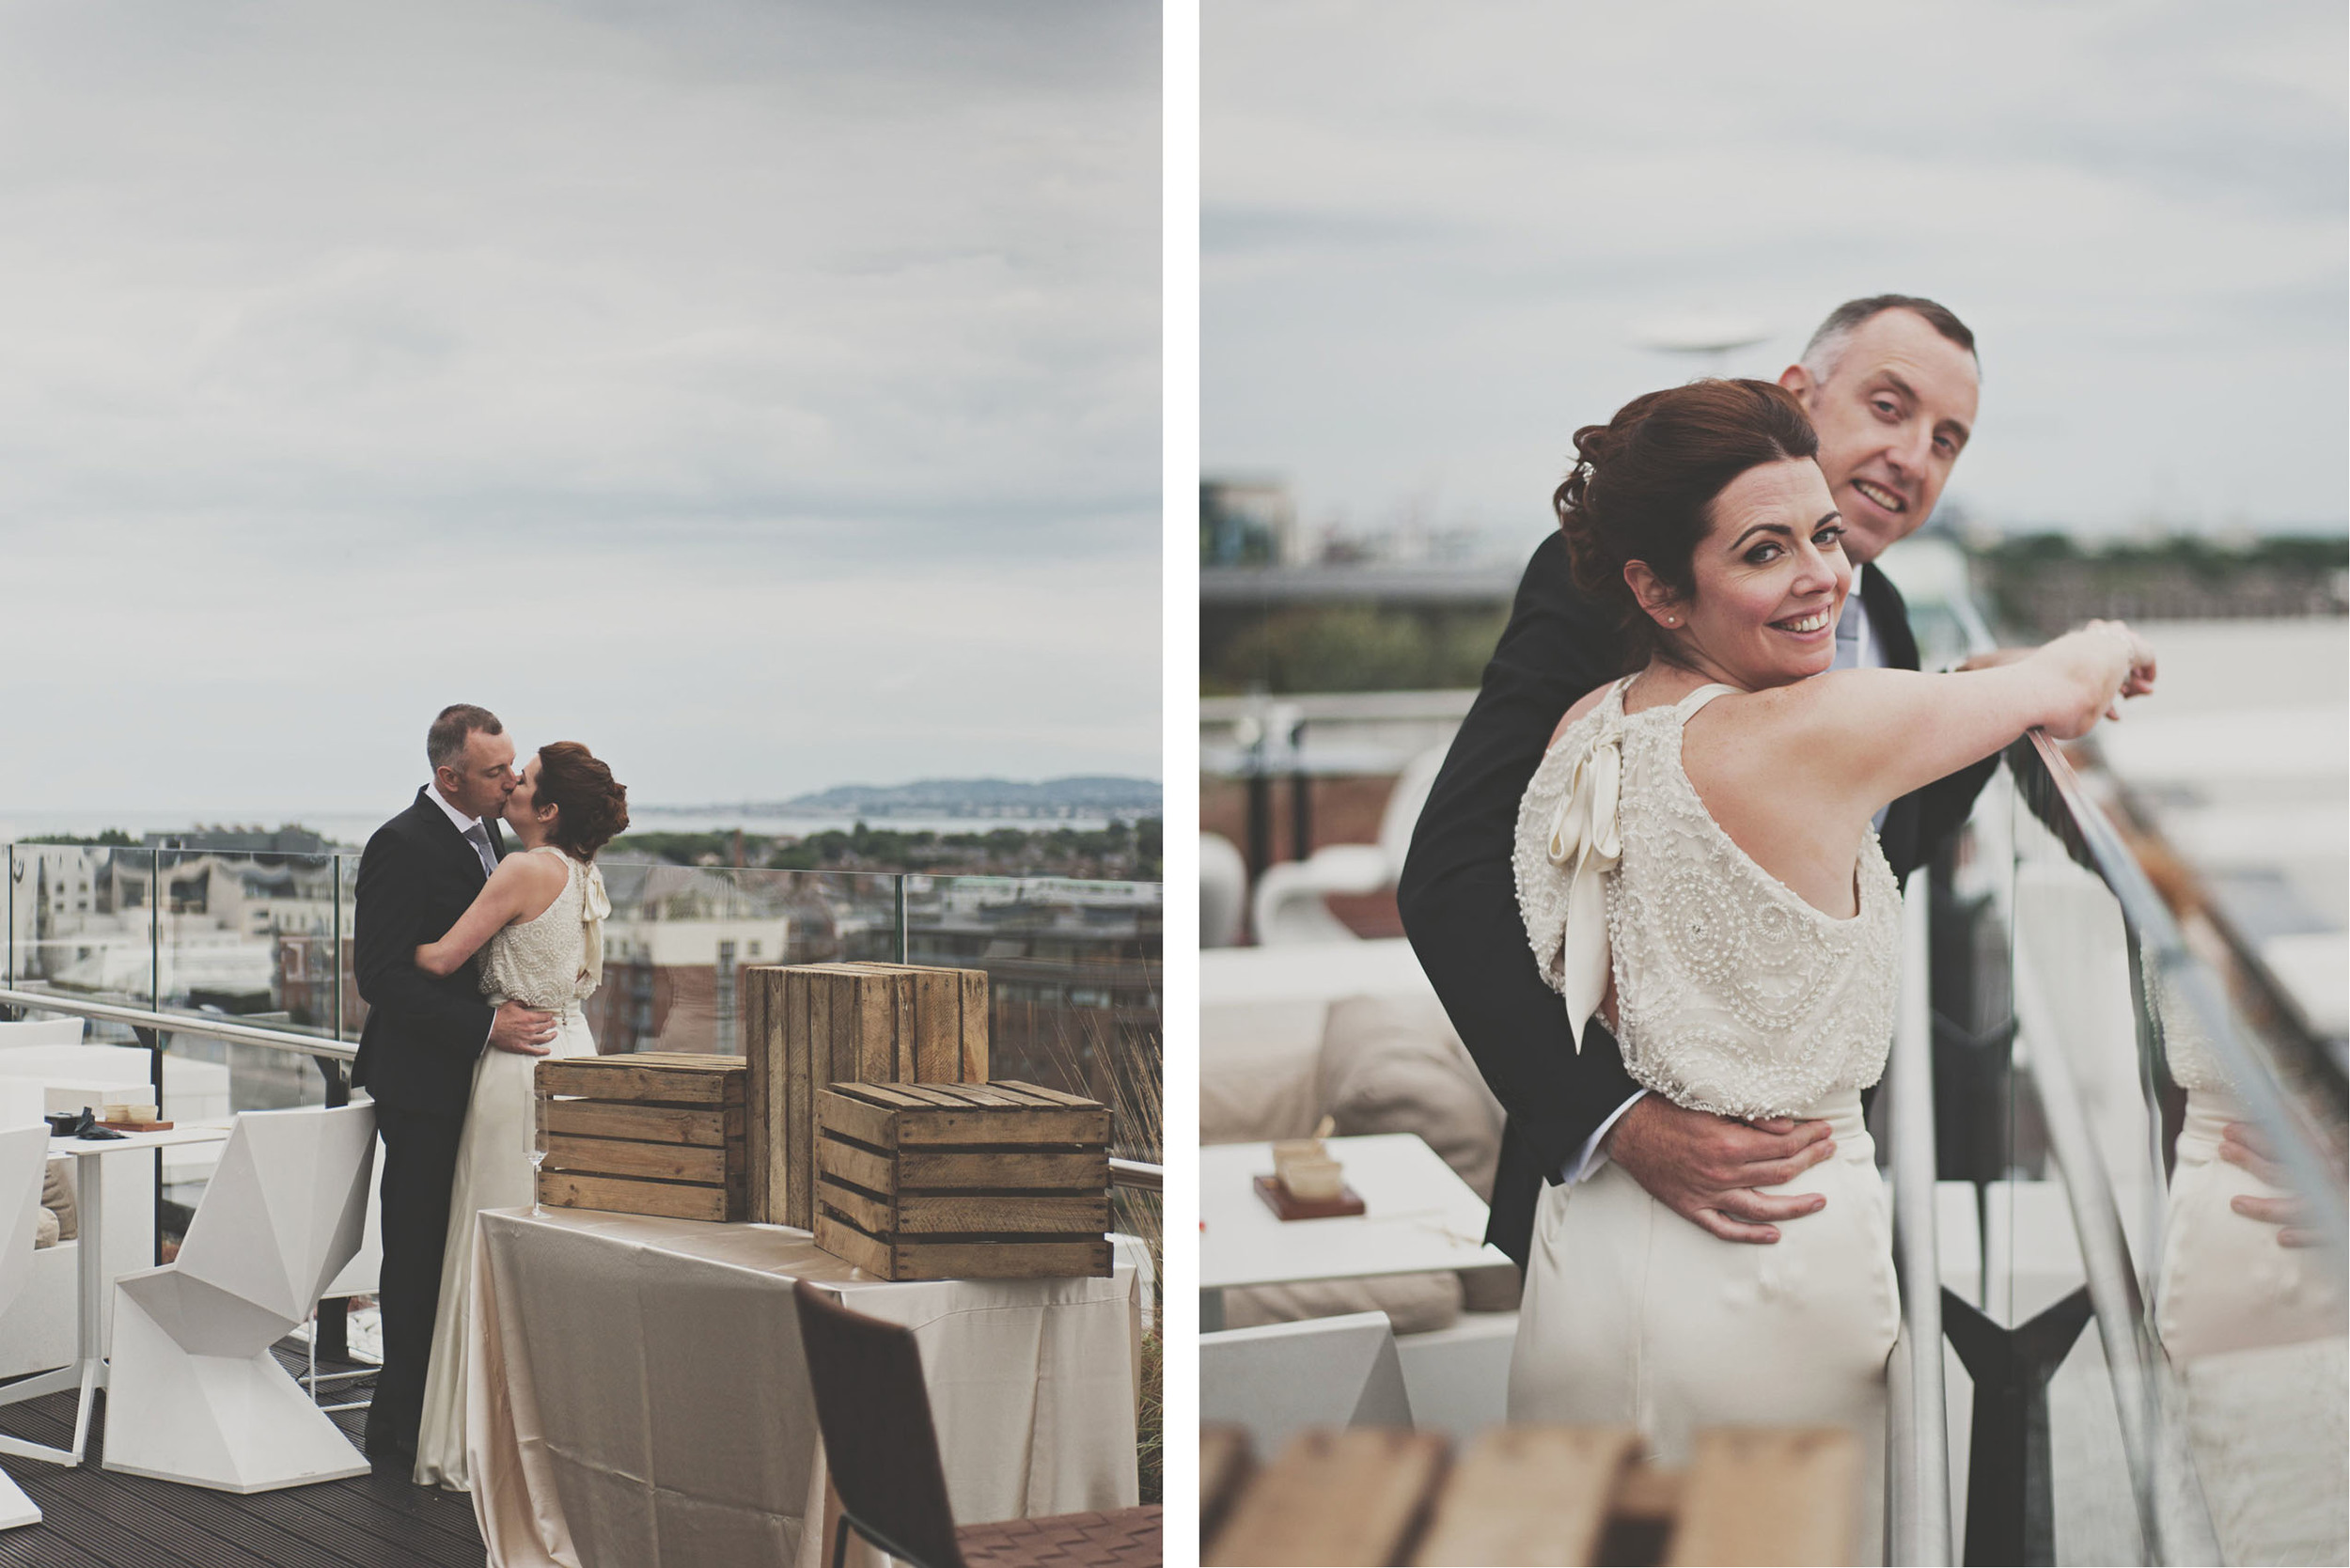 Mary & Donal's Marker Hotel Wedding 098.jpg